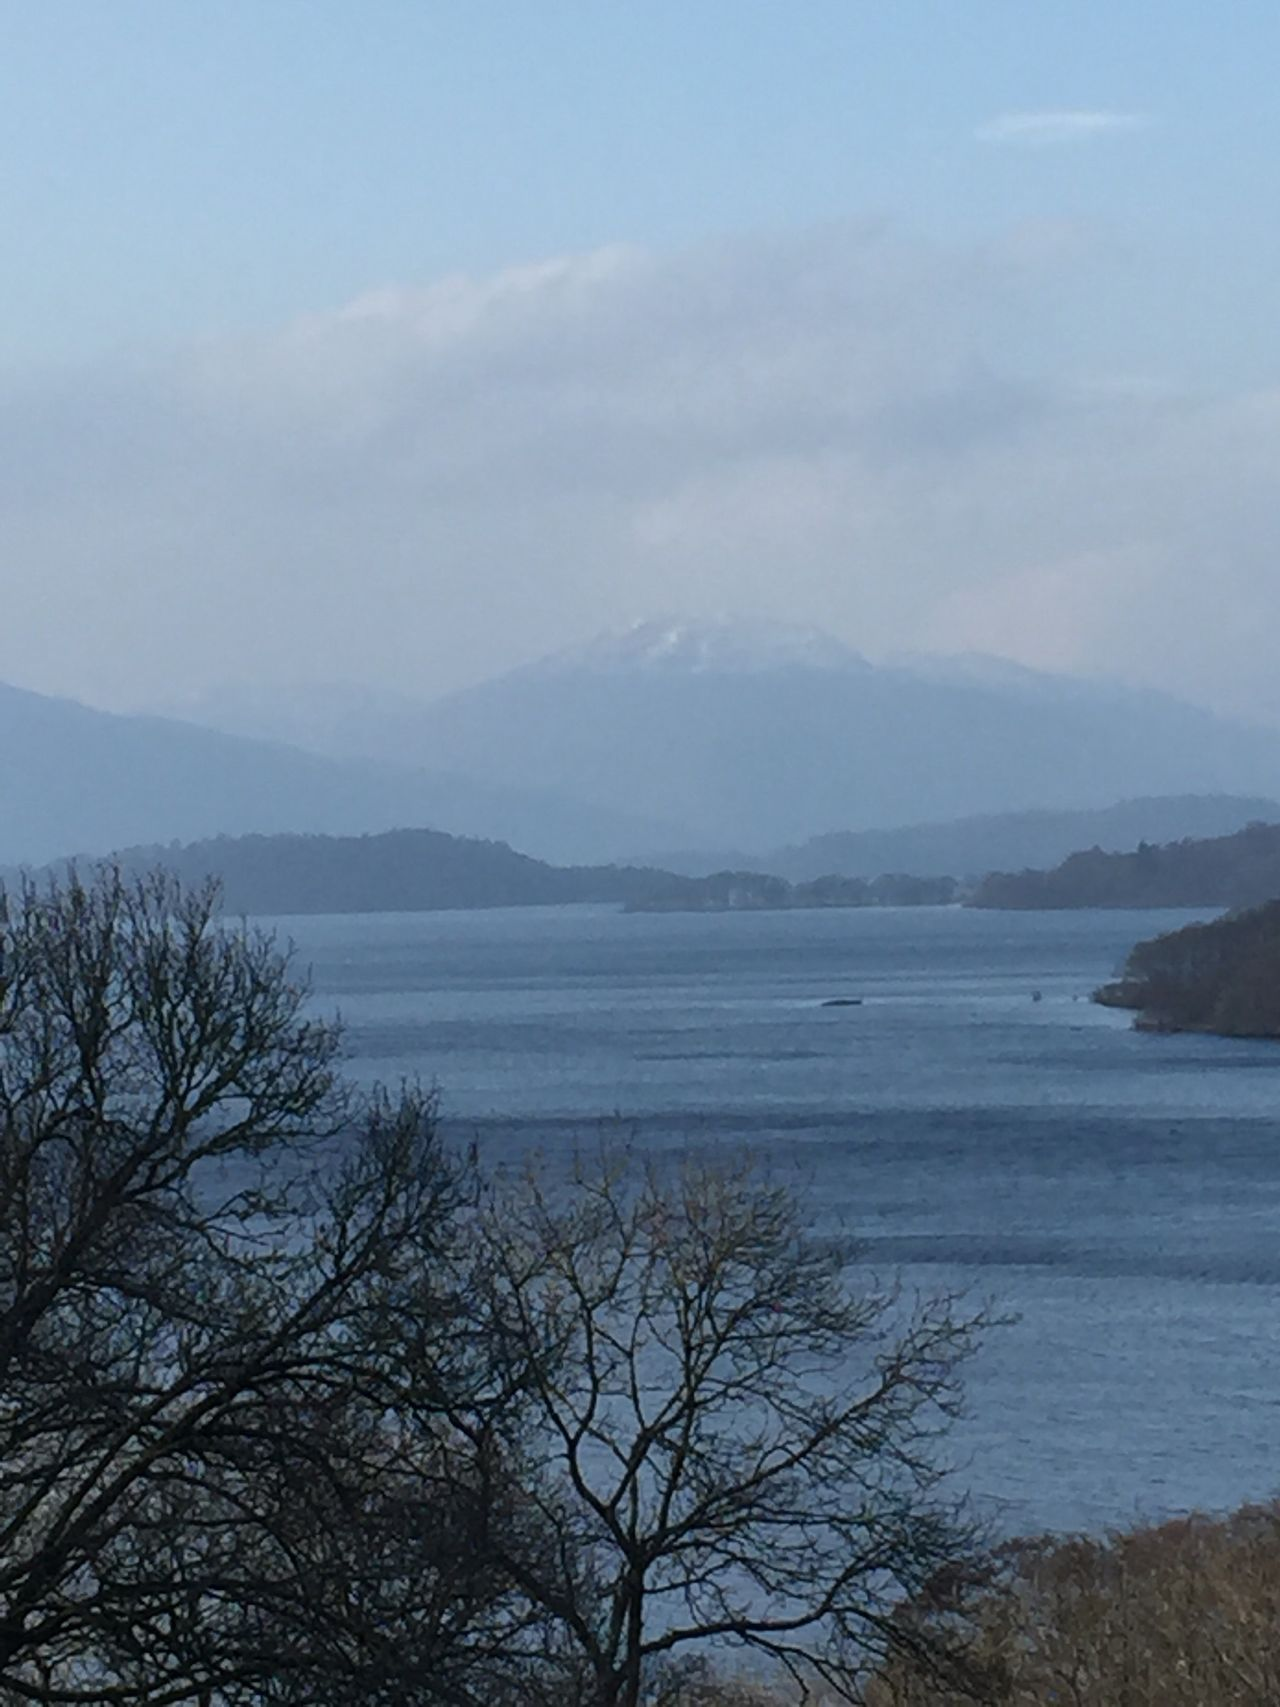 LochLomond Scotland Sky Mountain Lake Shore Tree Growth Outdoors Mountain Range Day Landscape Water Snowcapped Mountain Nature Beauty In Nature Non-urban Scene Tranquil Scene Blue Scenics Nature Photography Scenery Shots Beautiful Nature Scotlandsbeauty Outdoor Photography